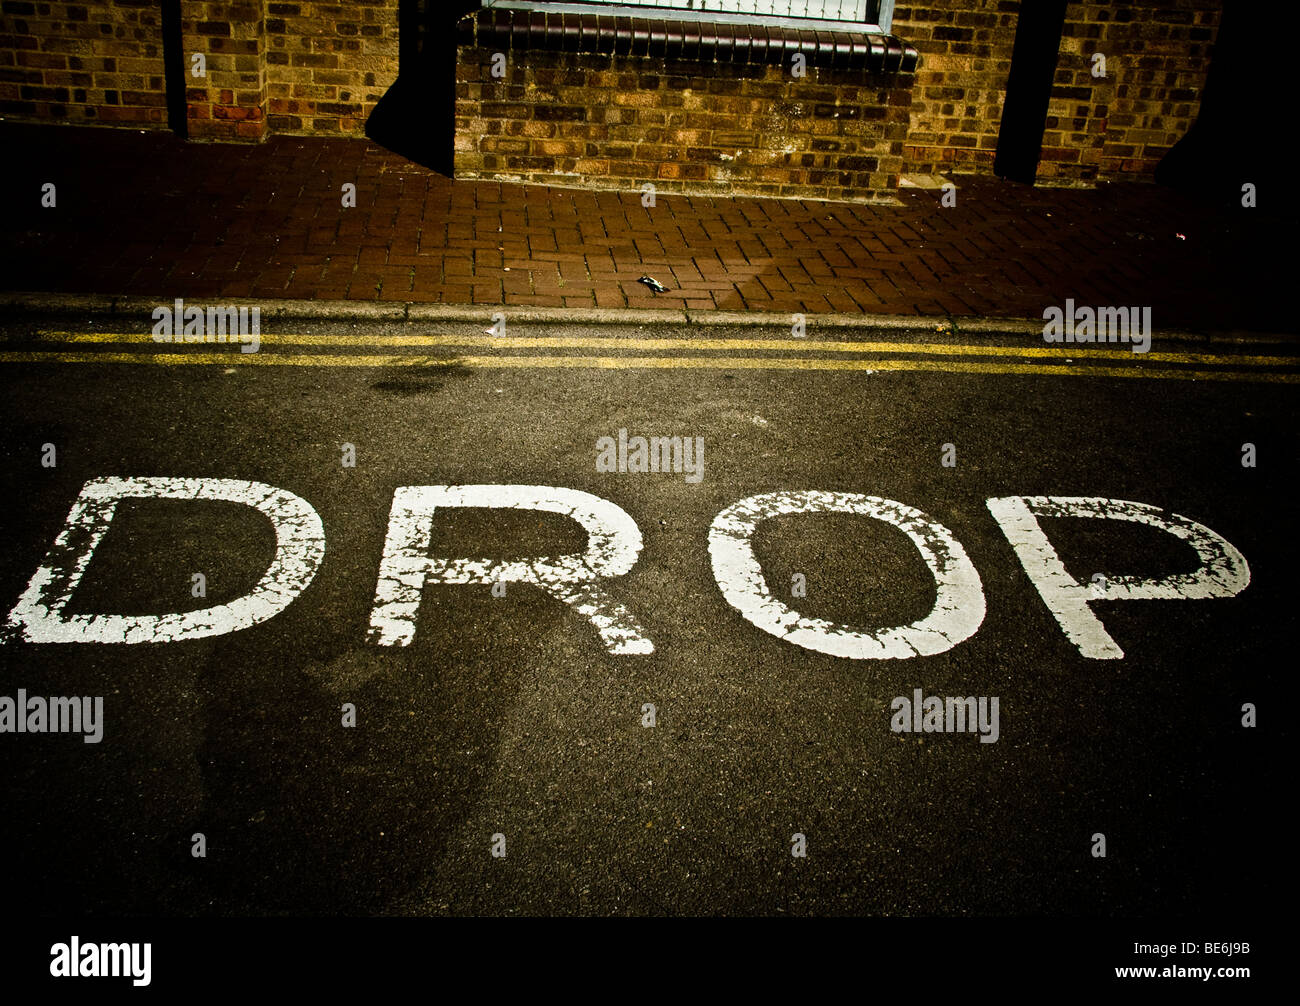 Drop written in paint on the road. - Stock Image